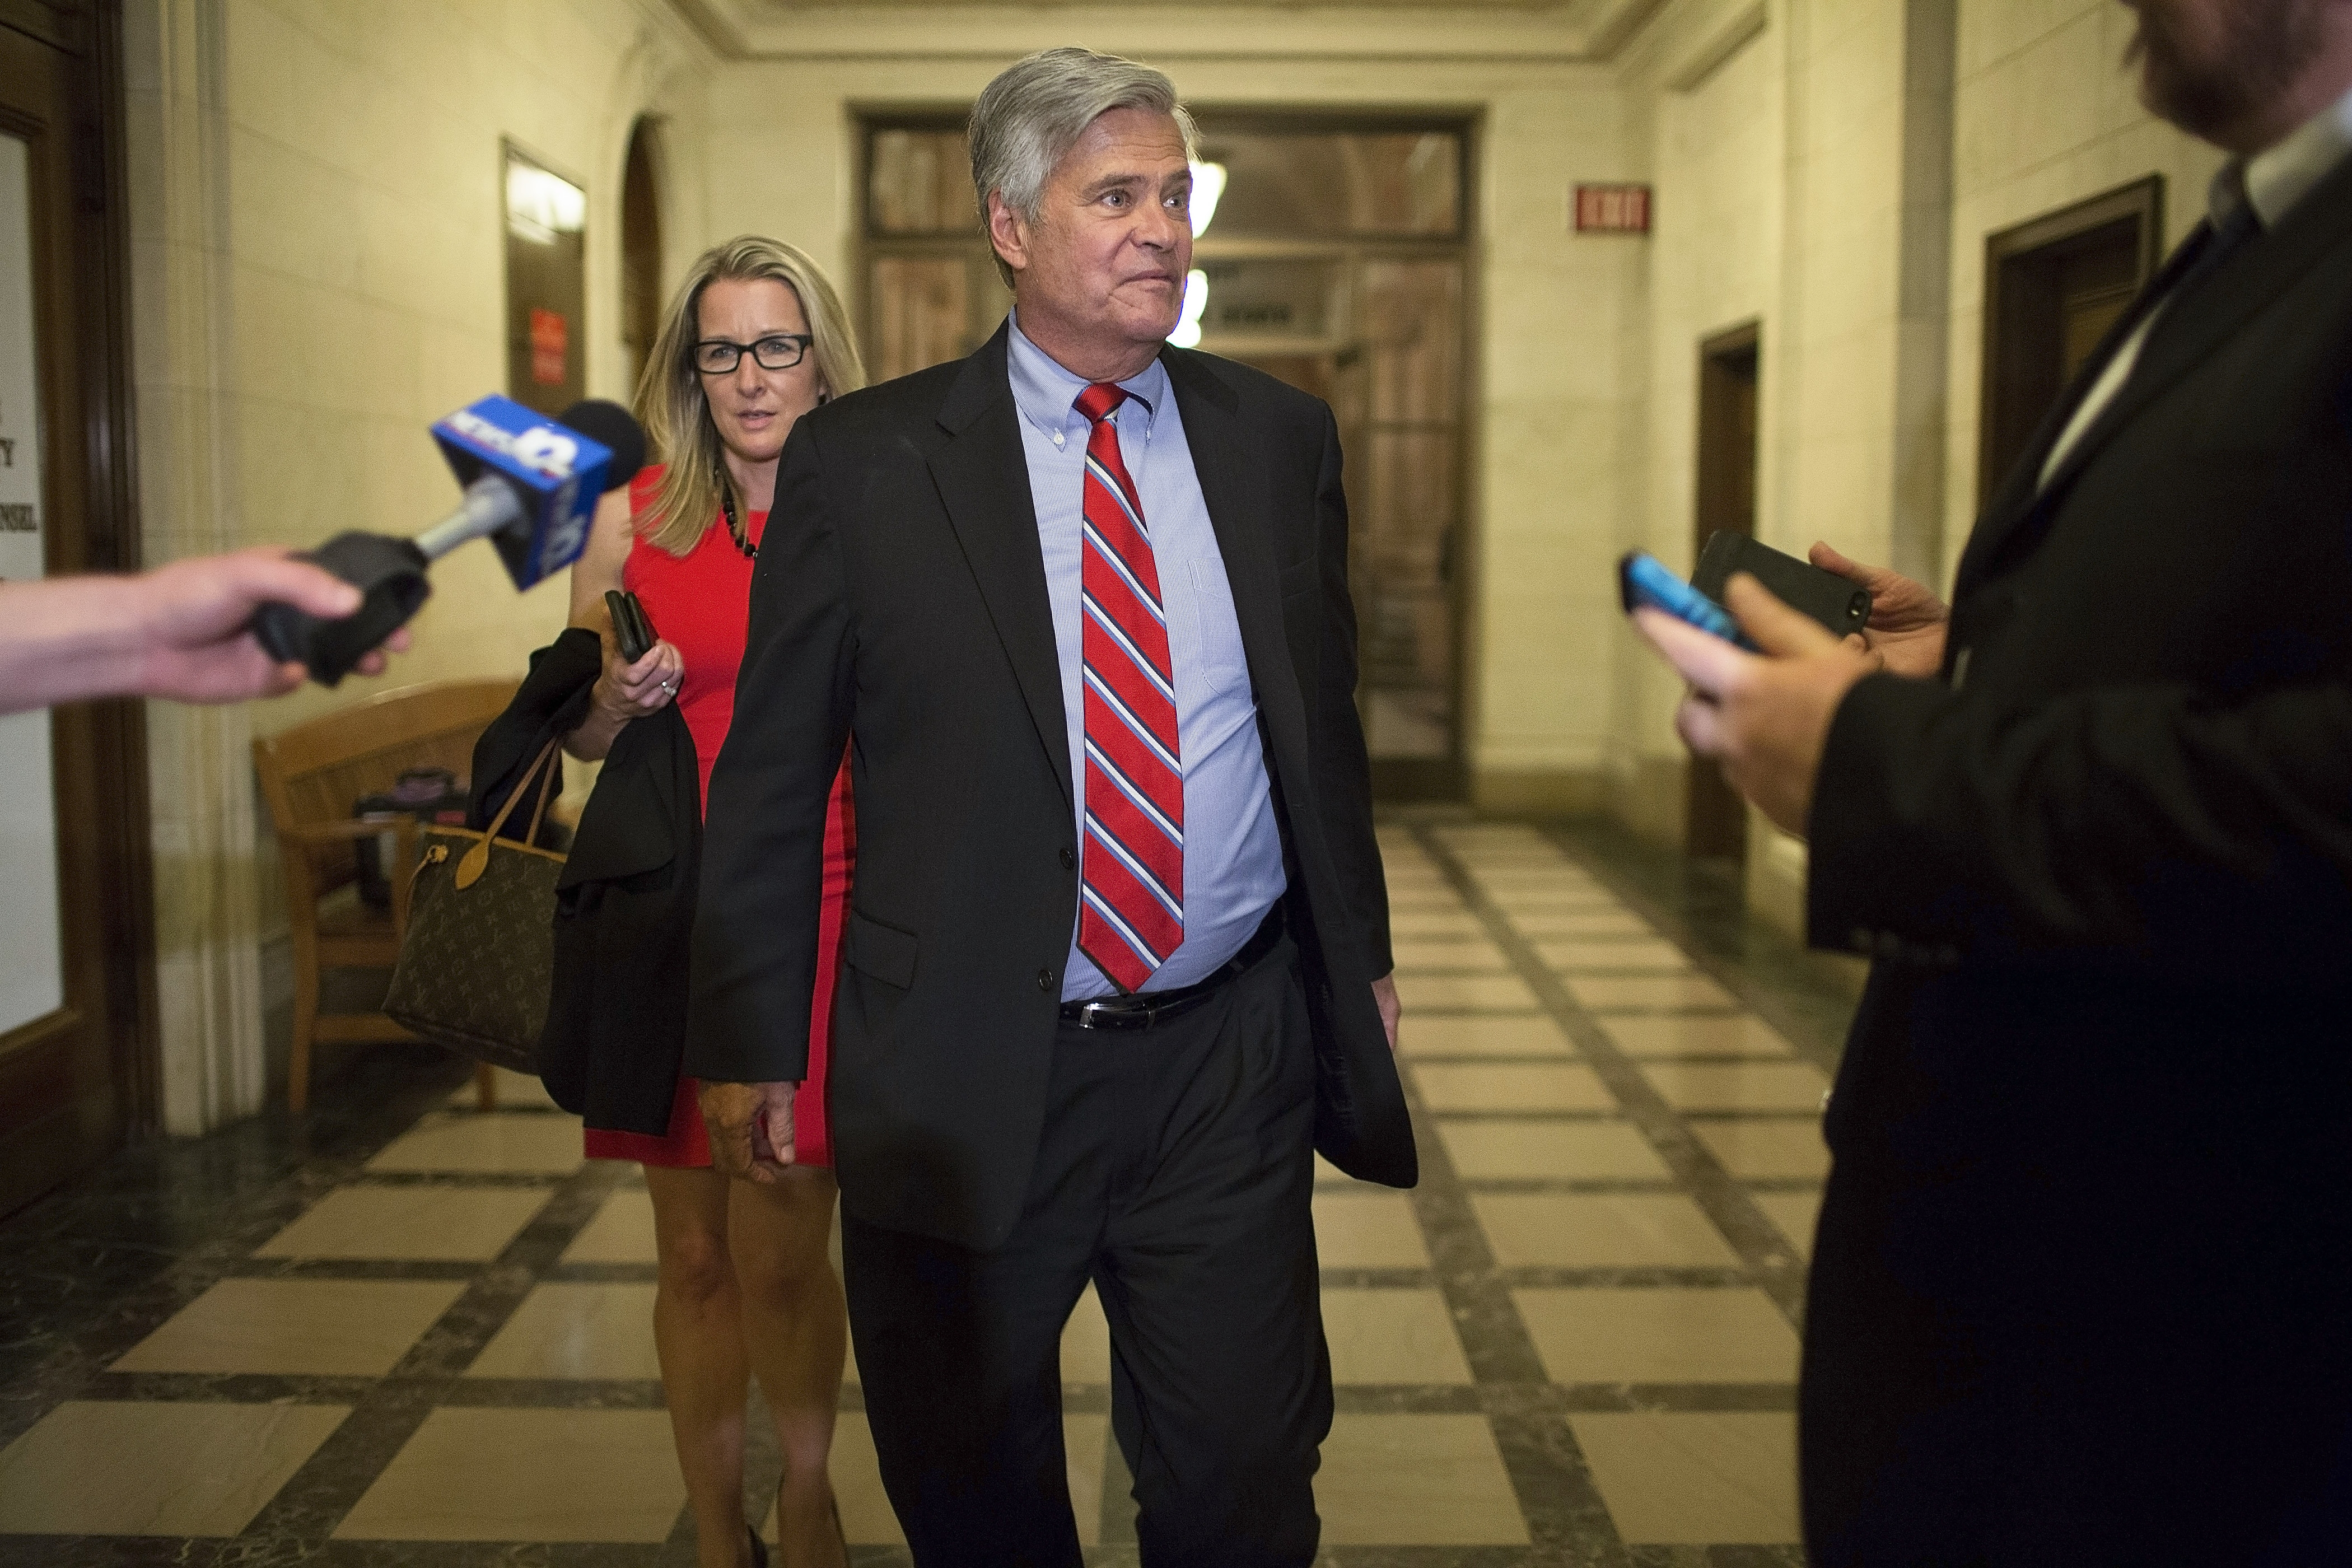 New York State Sen. Majority Leader Dean Skelos returns to the State Capitol Monday evening to meet with his Senate Republican colleagues after being arrested in Manhattan that morning. (The New York Times)